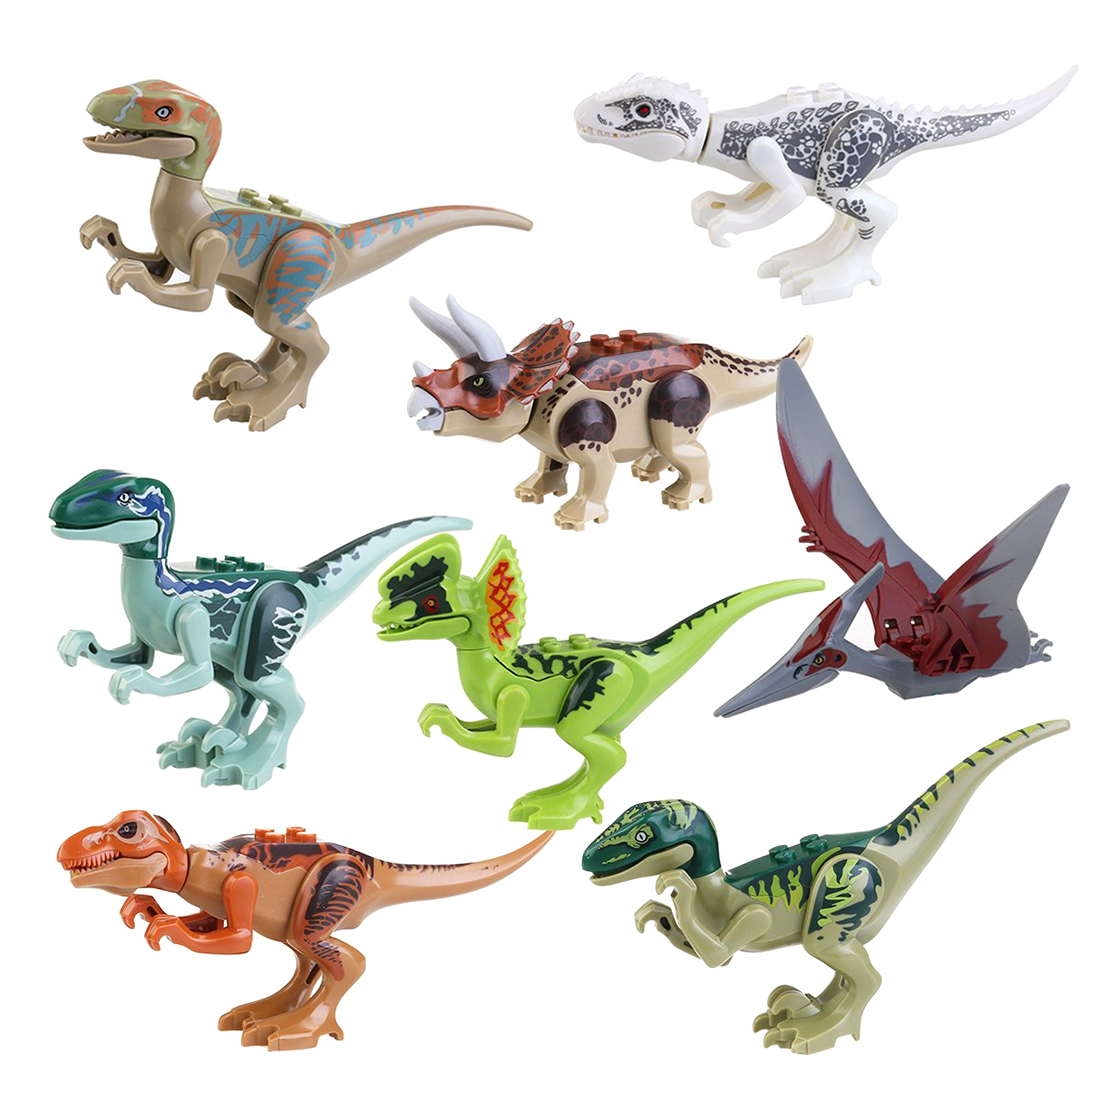 5 pack Jurassic Building Blocks Park Dinosaur Toys Jurassic World Dinosaur Toys - 8pcs голь н жизнь замечательных растений isbn 9785977536967